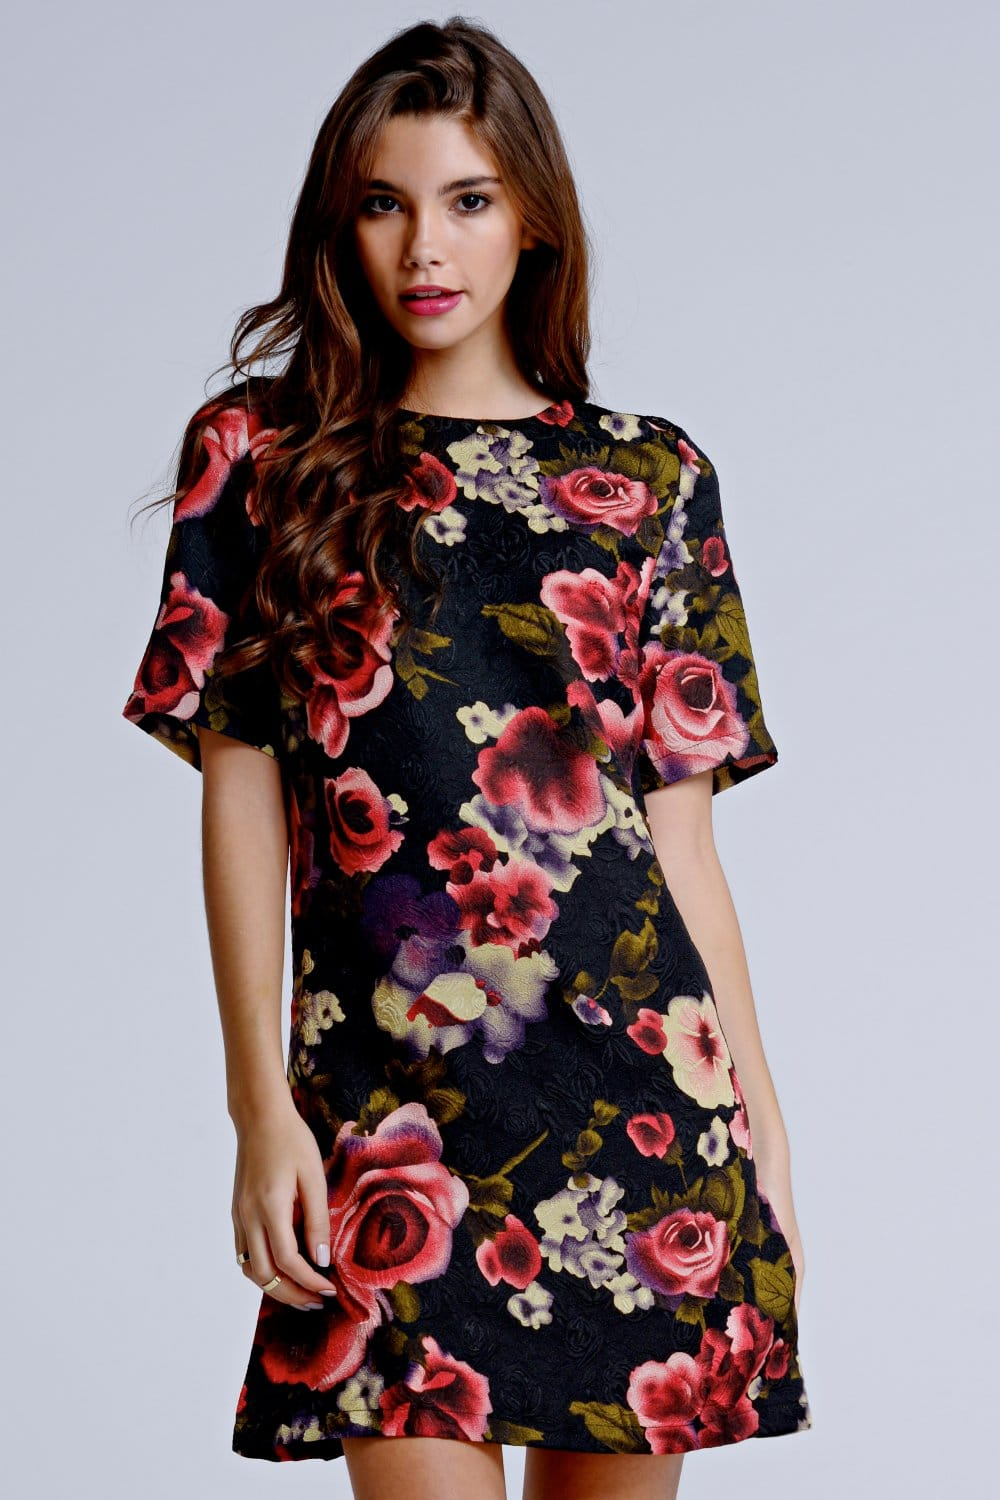 Outlet Girls On Film Pink Textured Rose Print Tunic Dress